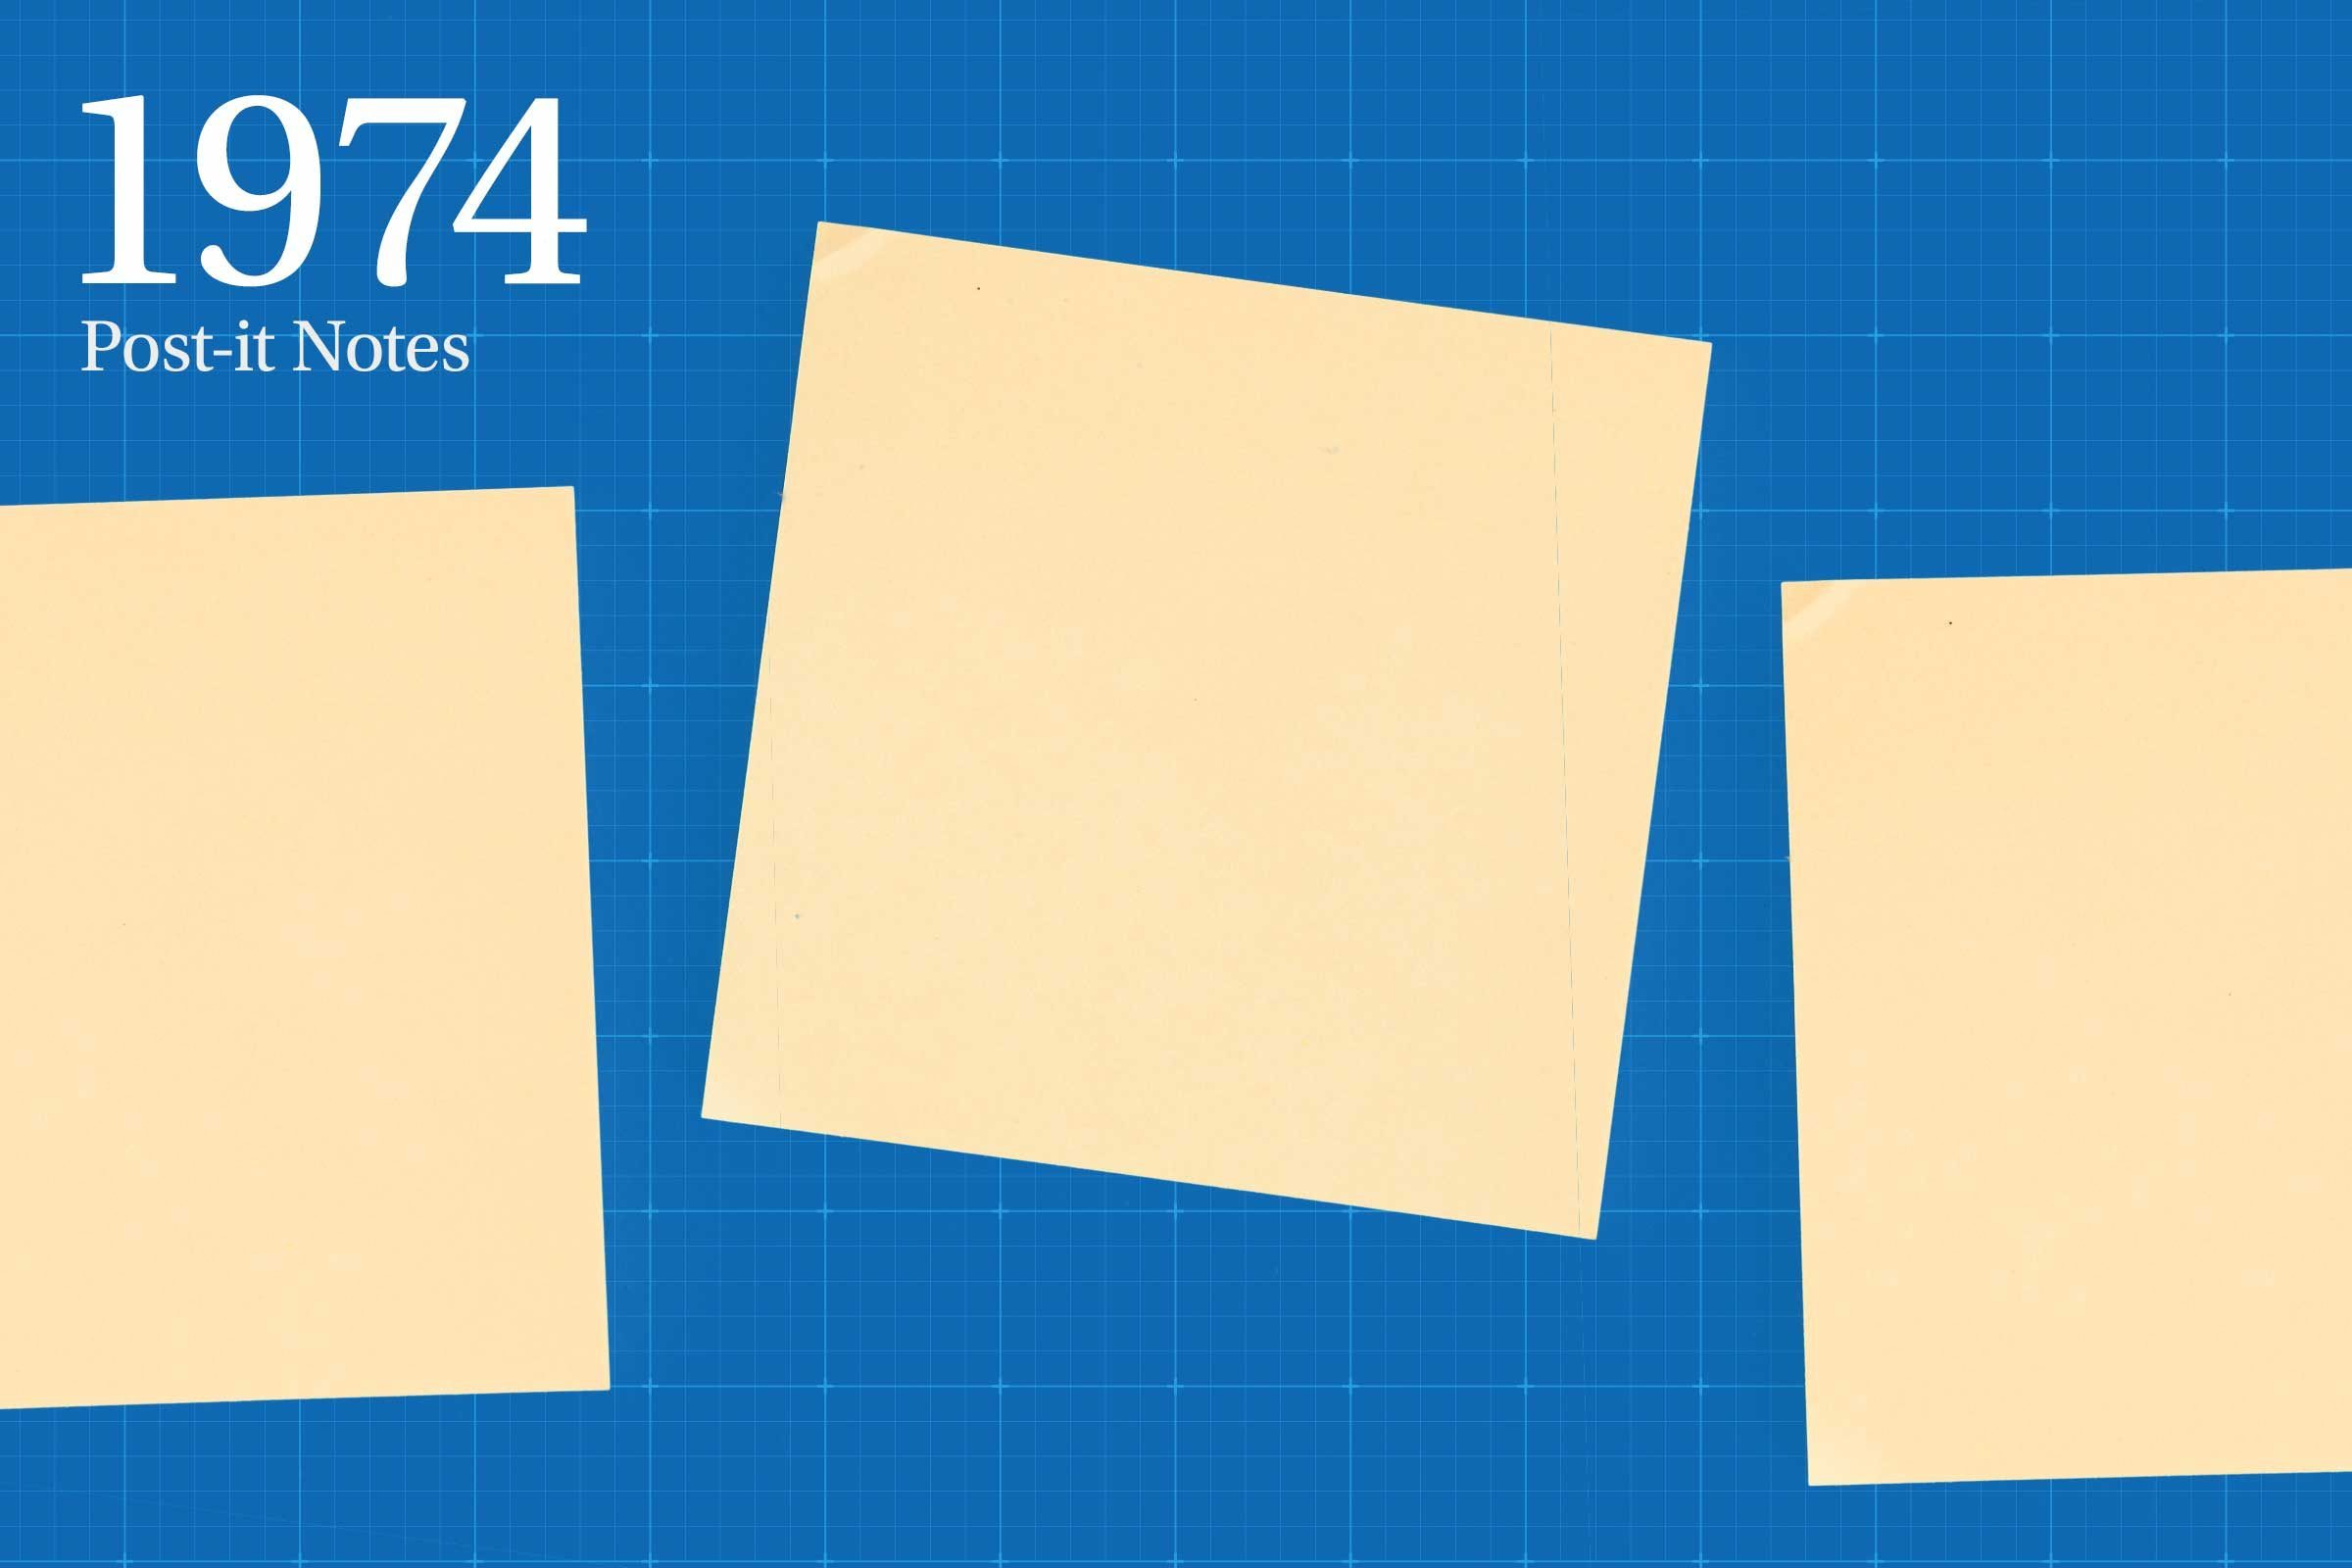 1974: Post-it Notes